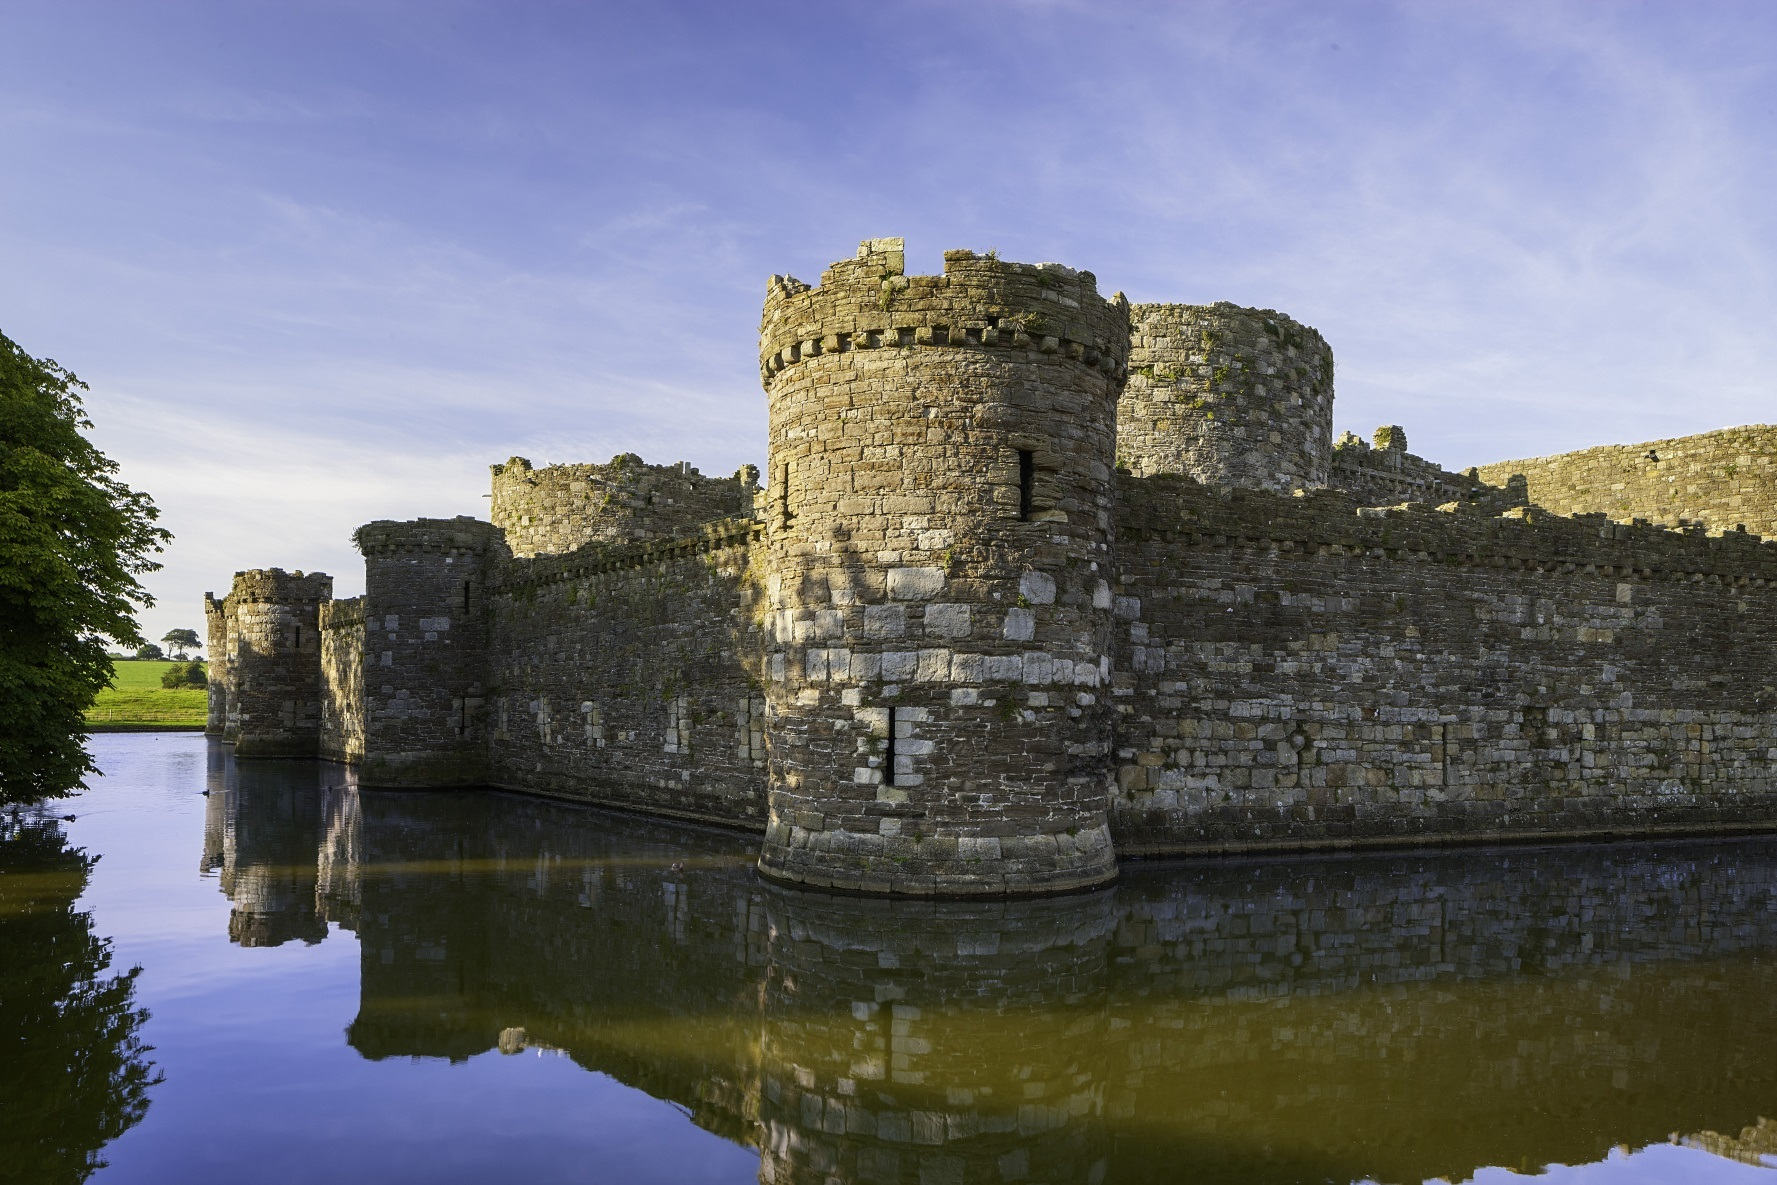 Beaumaris is a popular tourist destination, with its main attractions including the castle